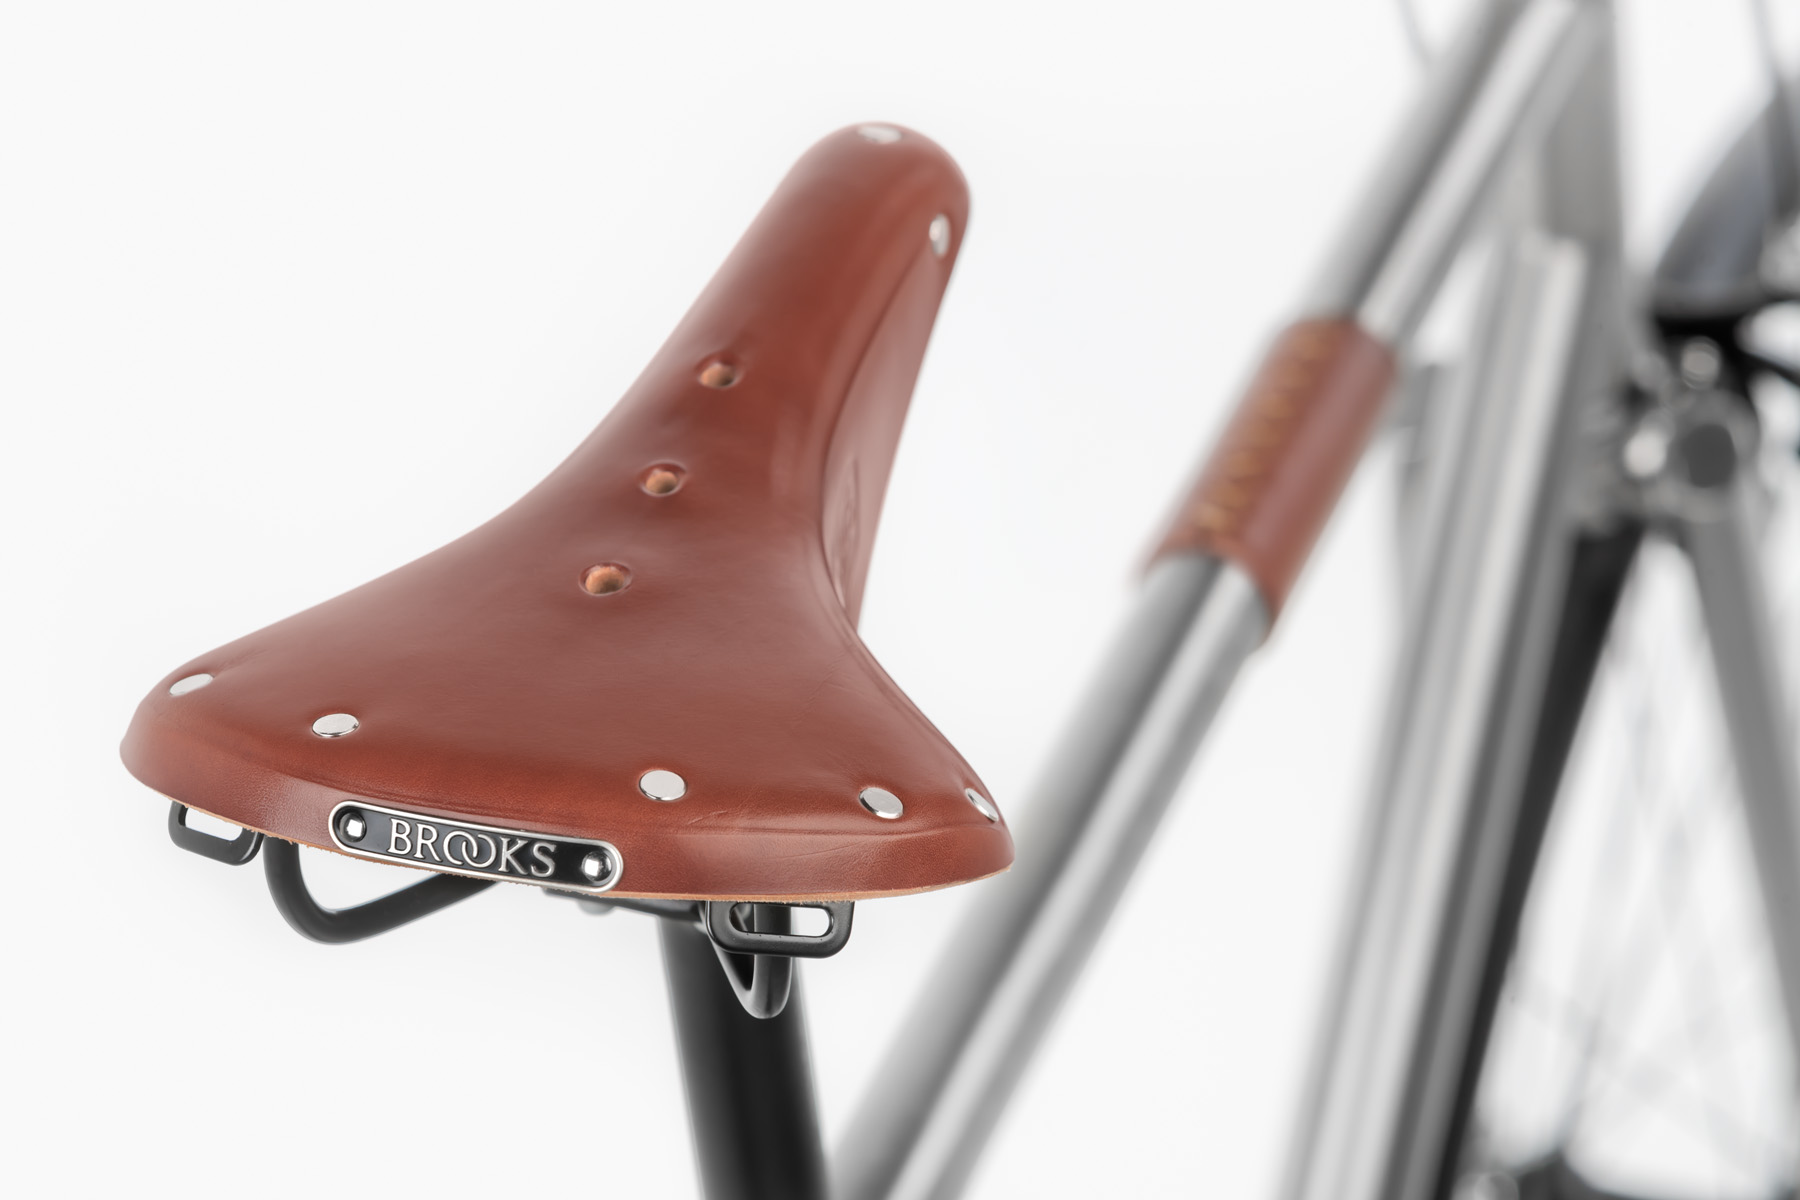 Nua Brooks saddle